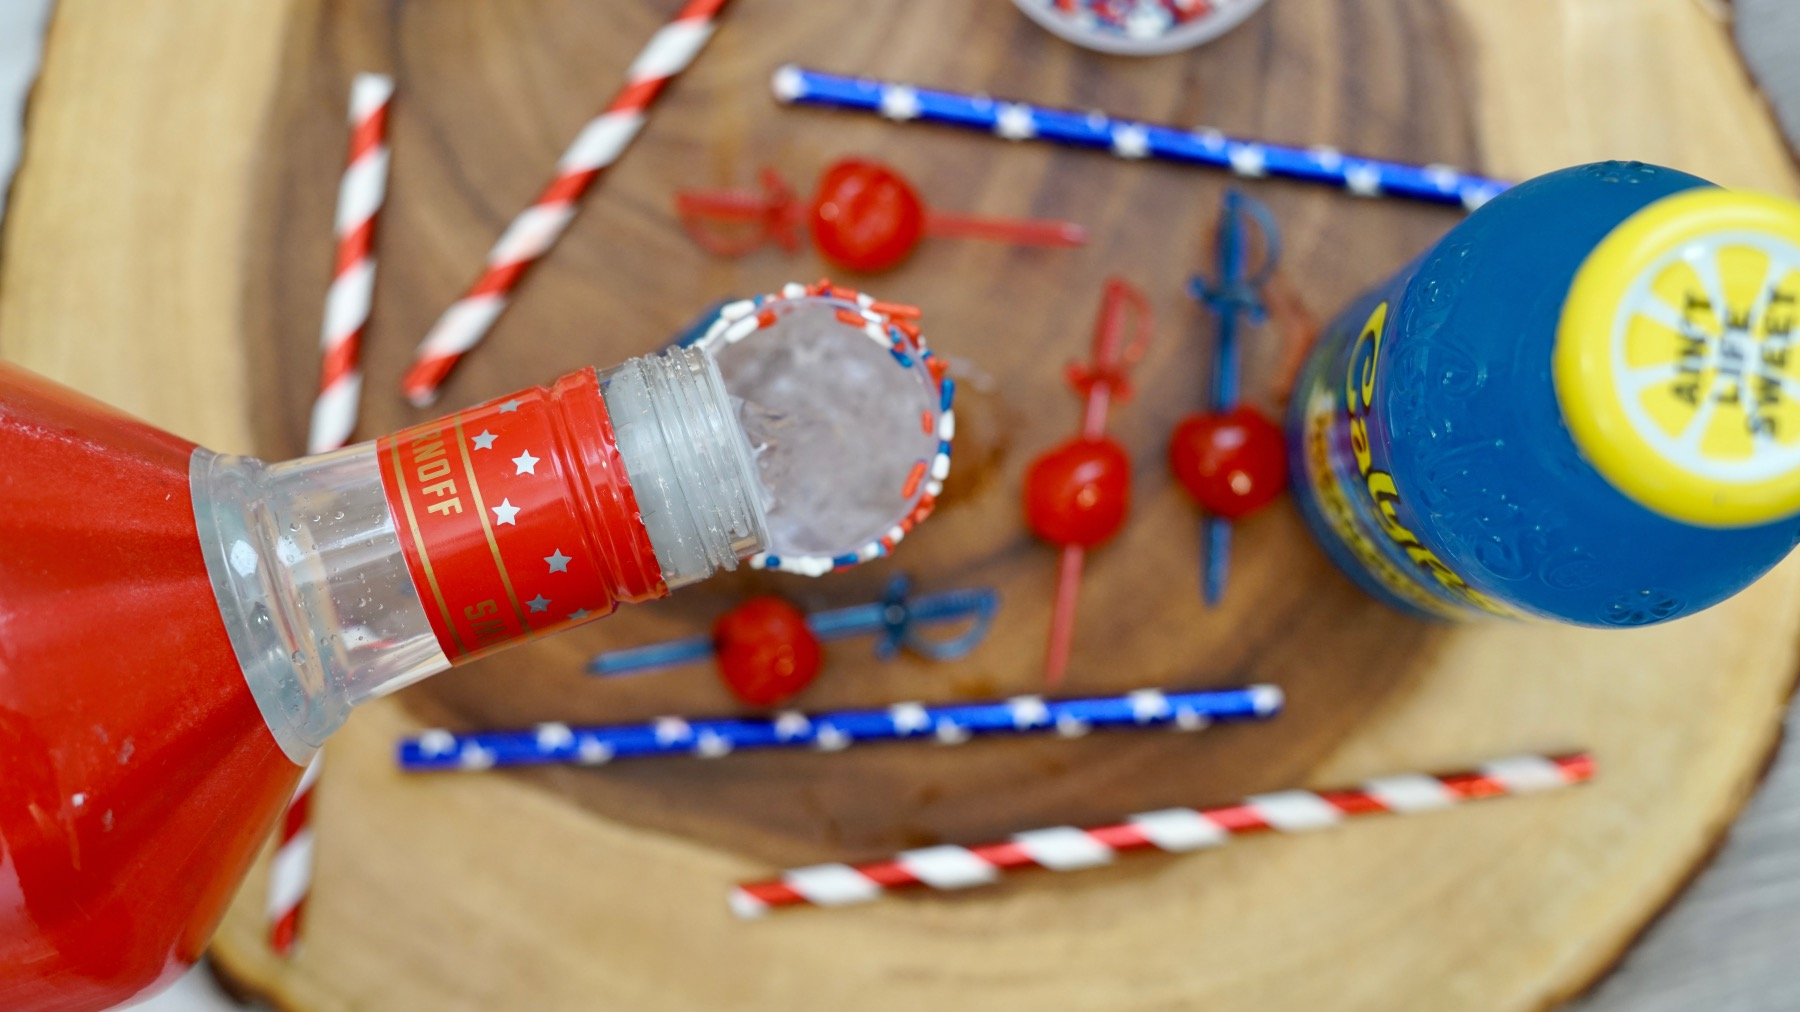 pour in the smirnoff red, white, and berry pop shop america